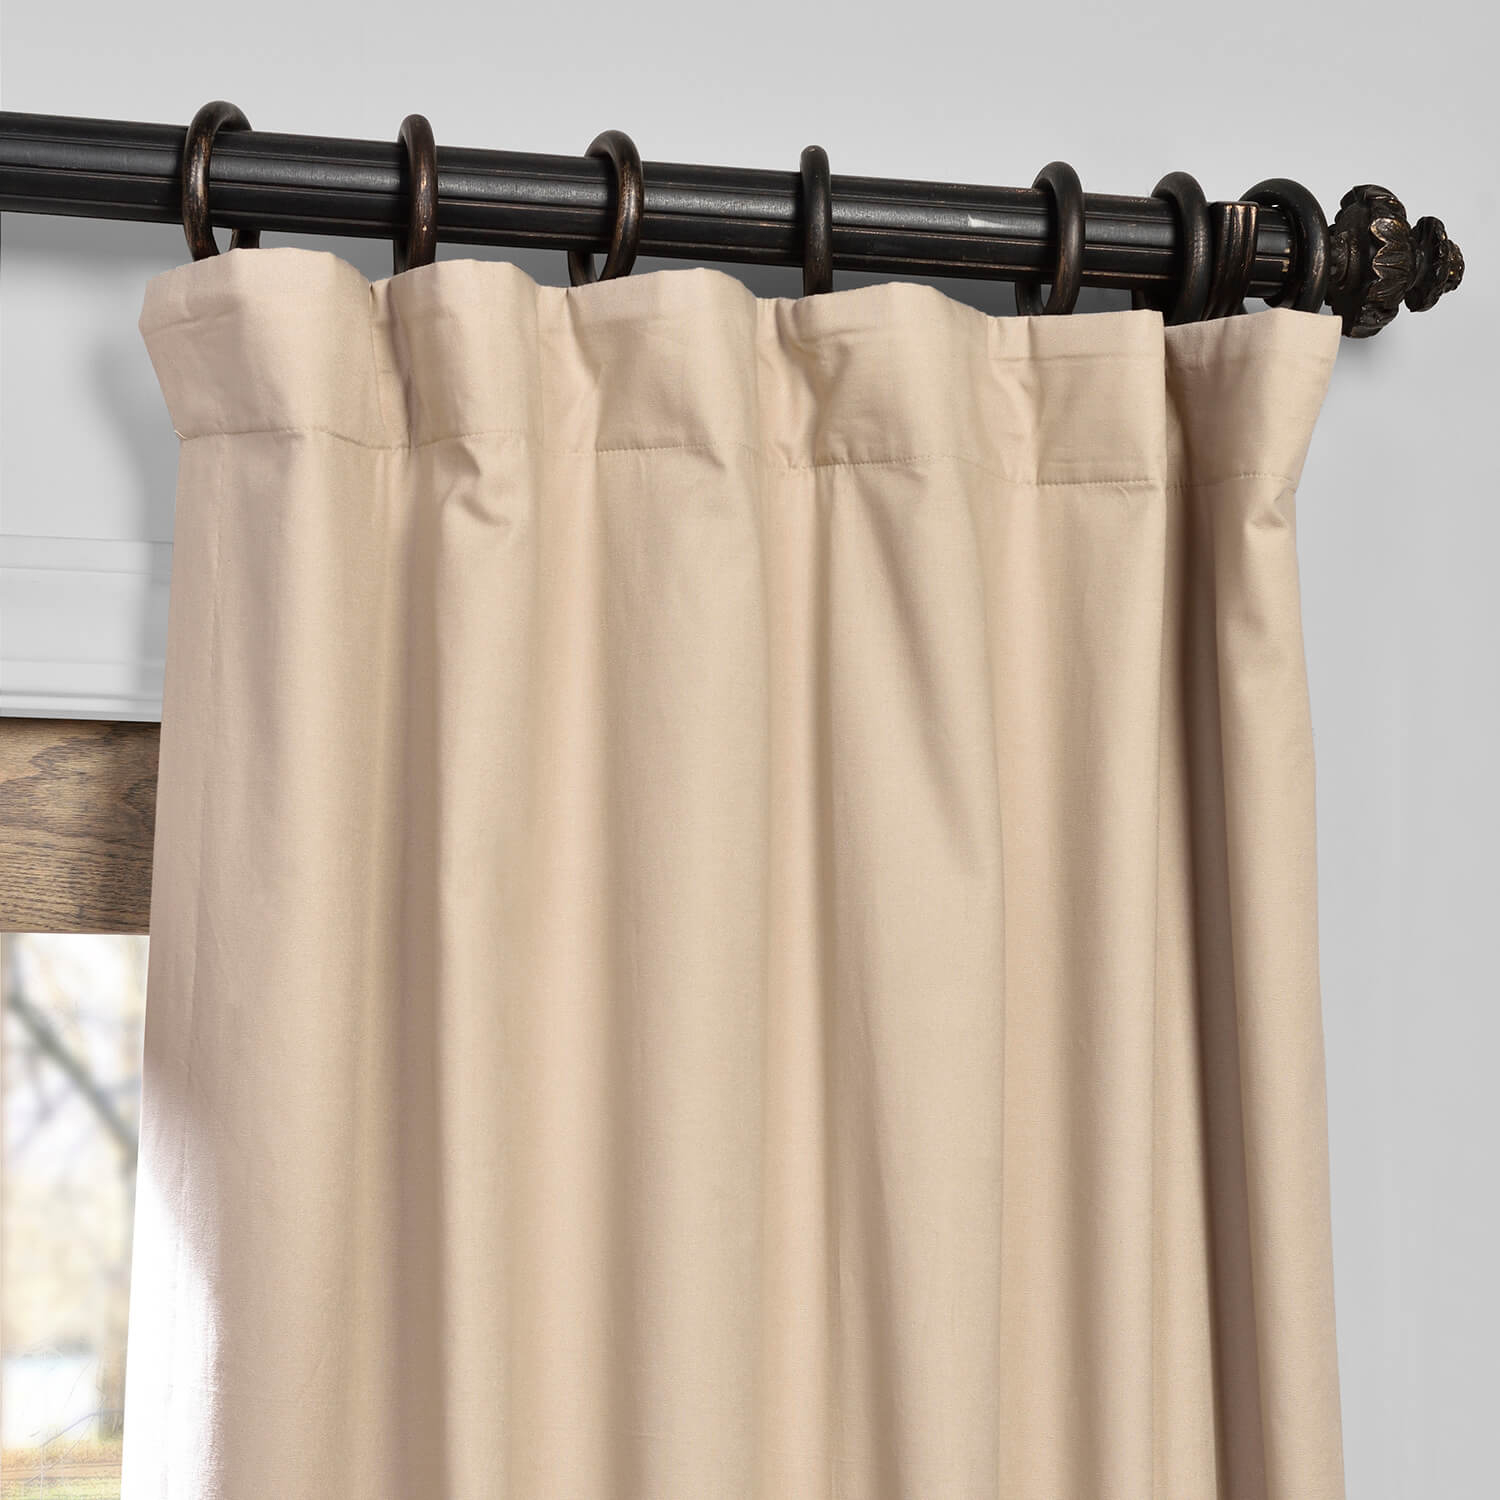 Rugged Tan Solid Cotton Blackout Curtain Pertaining To Solid Cotton True Blackout Curtain Panels (View 9 of 30)